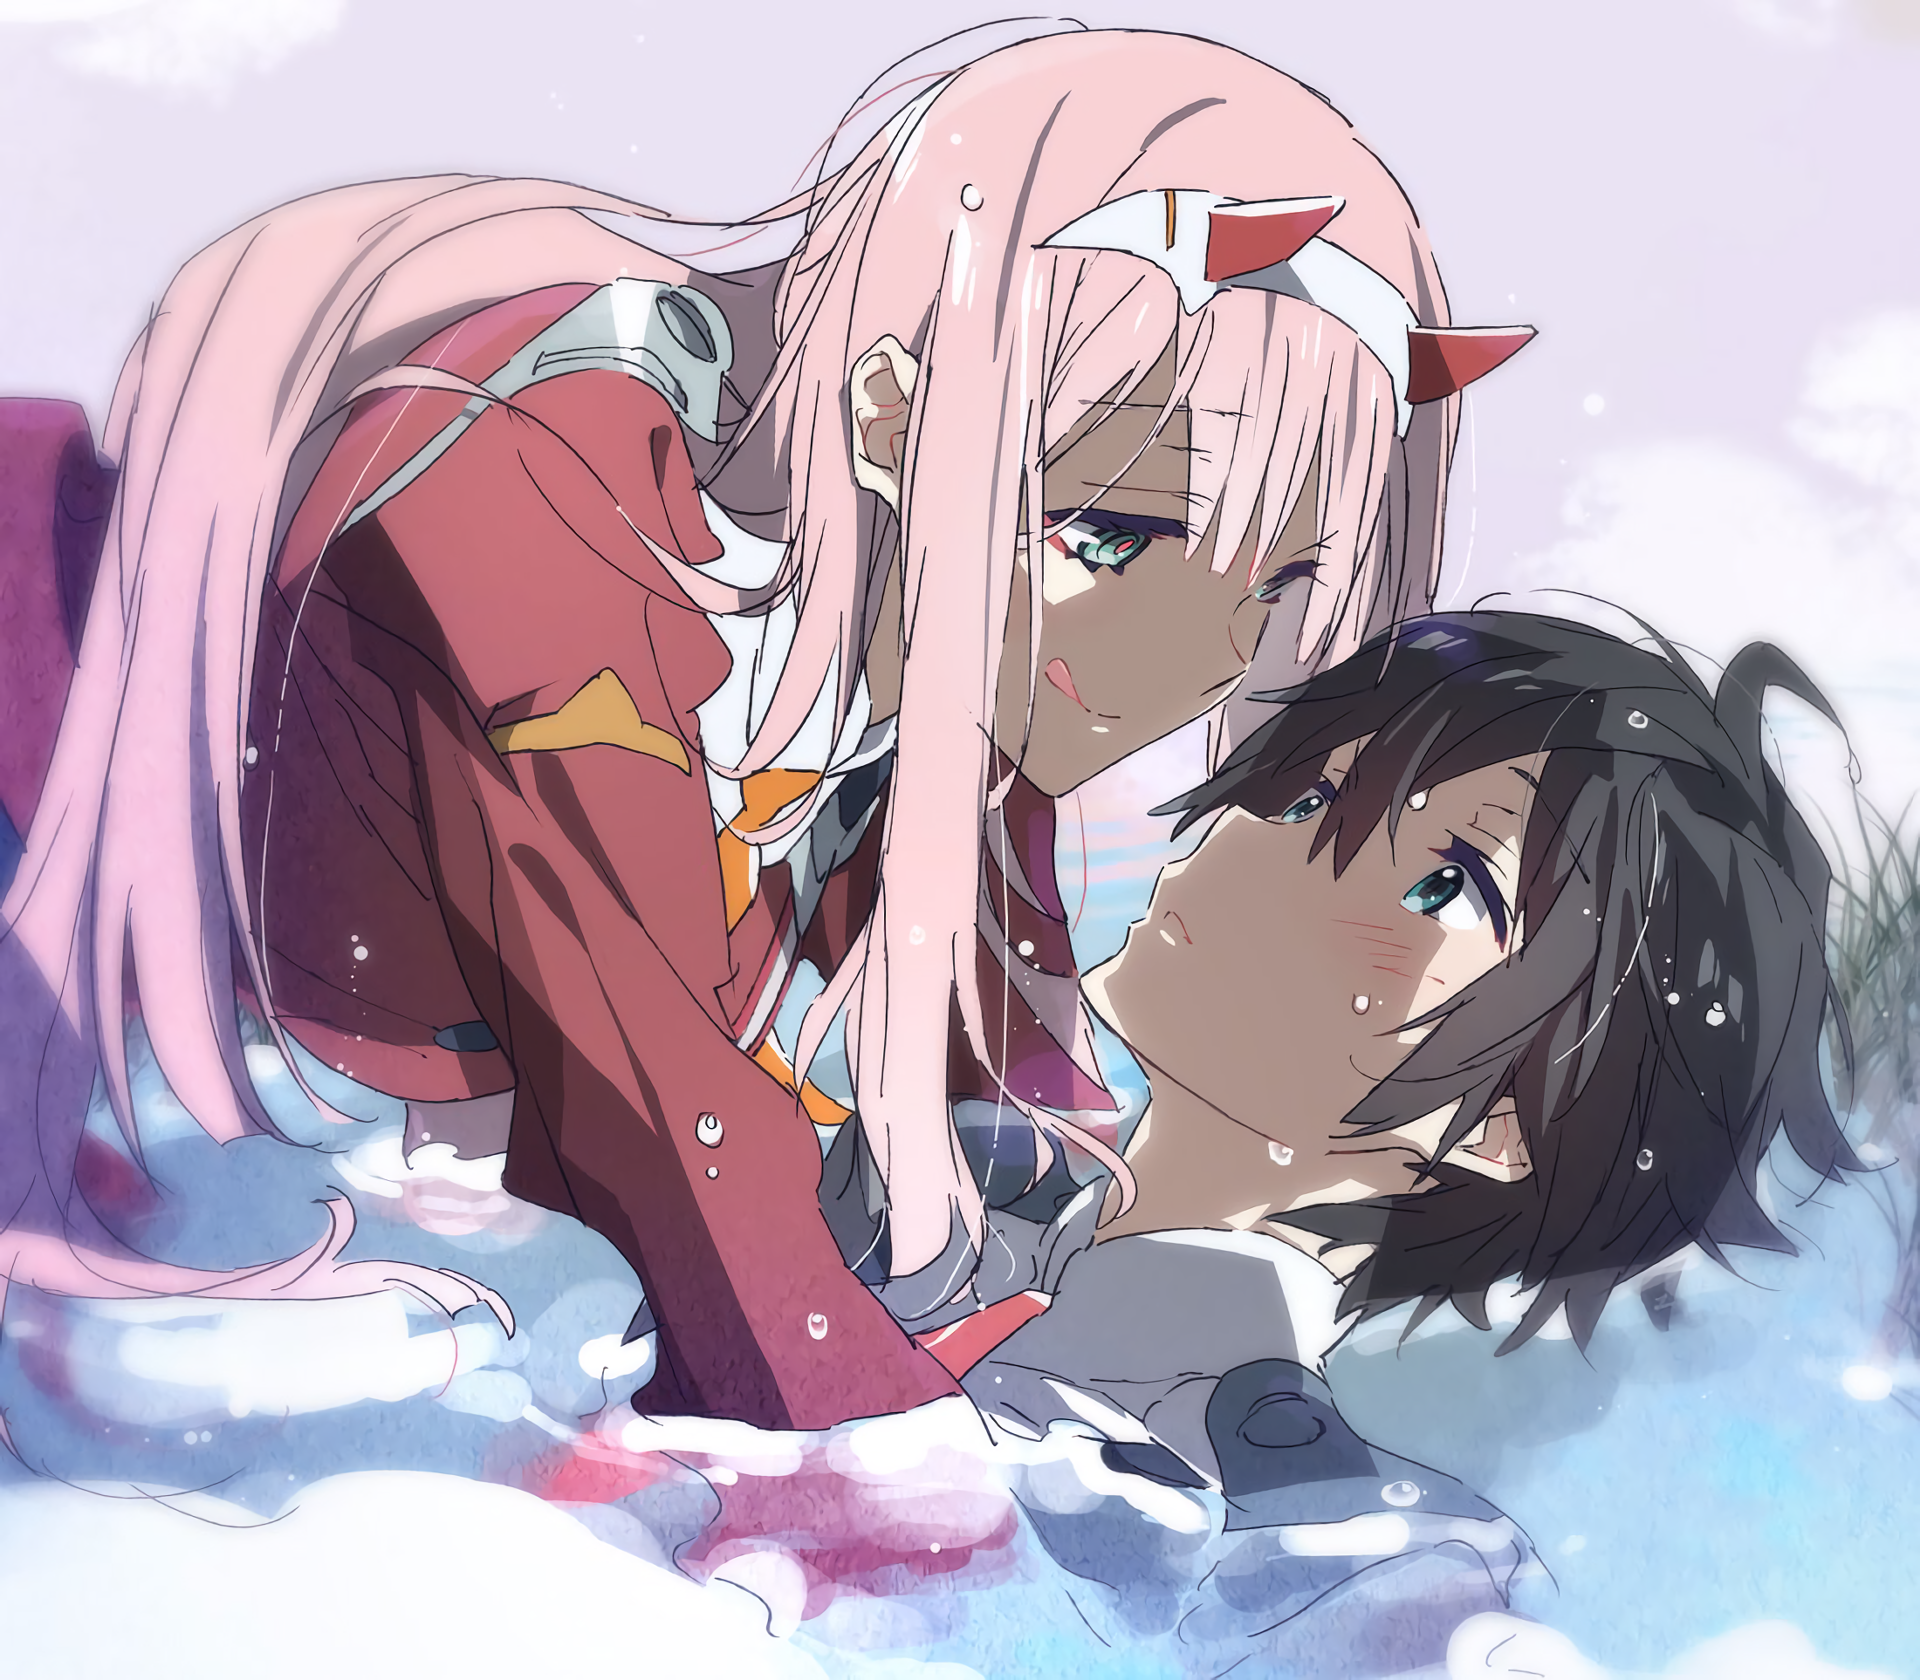 Anime 1920x1680 Darling in the FranXX Zero Two (Darling in the FranXX) Code:016 (Hiro)  pink hair